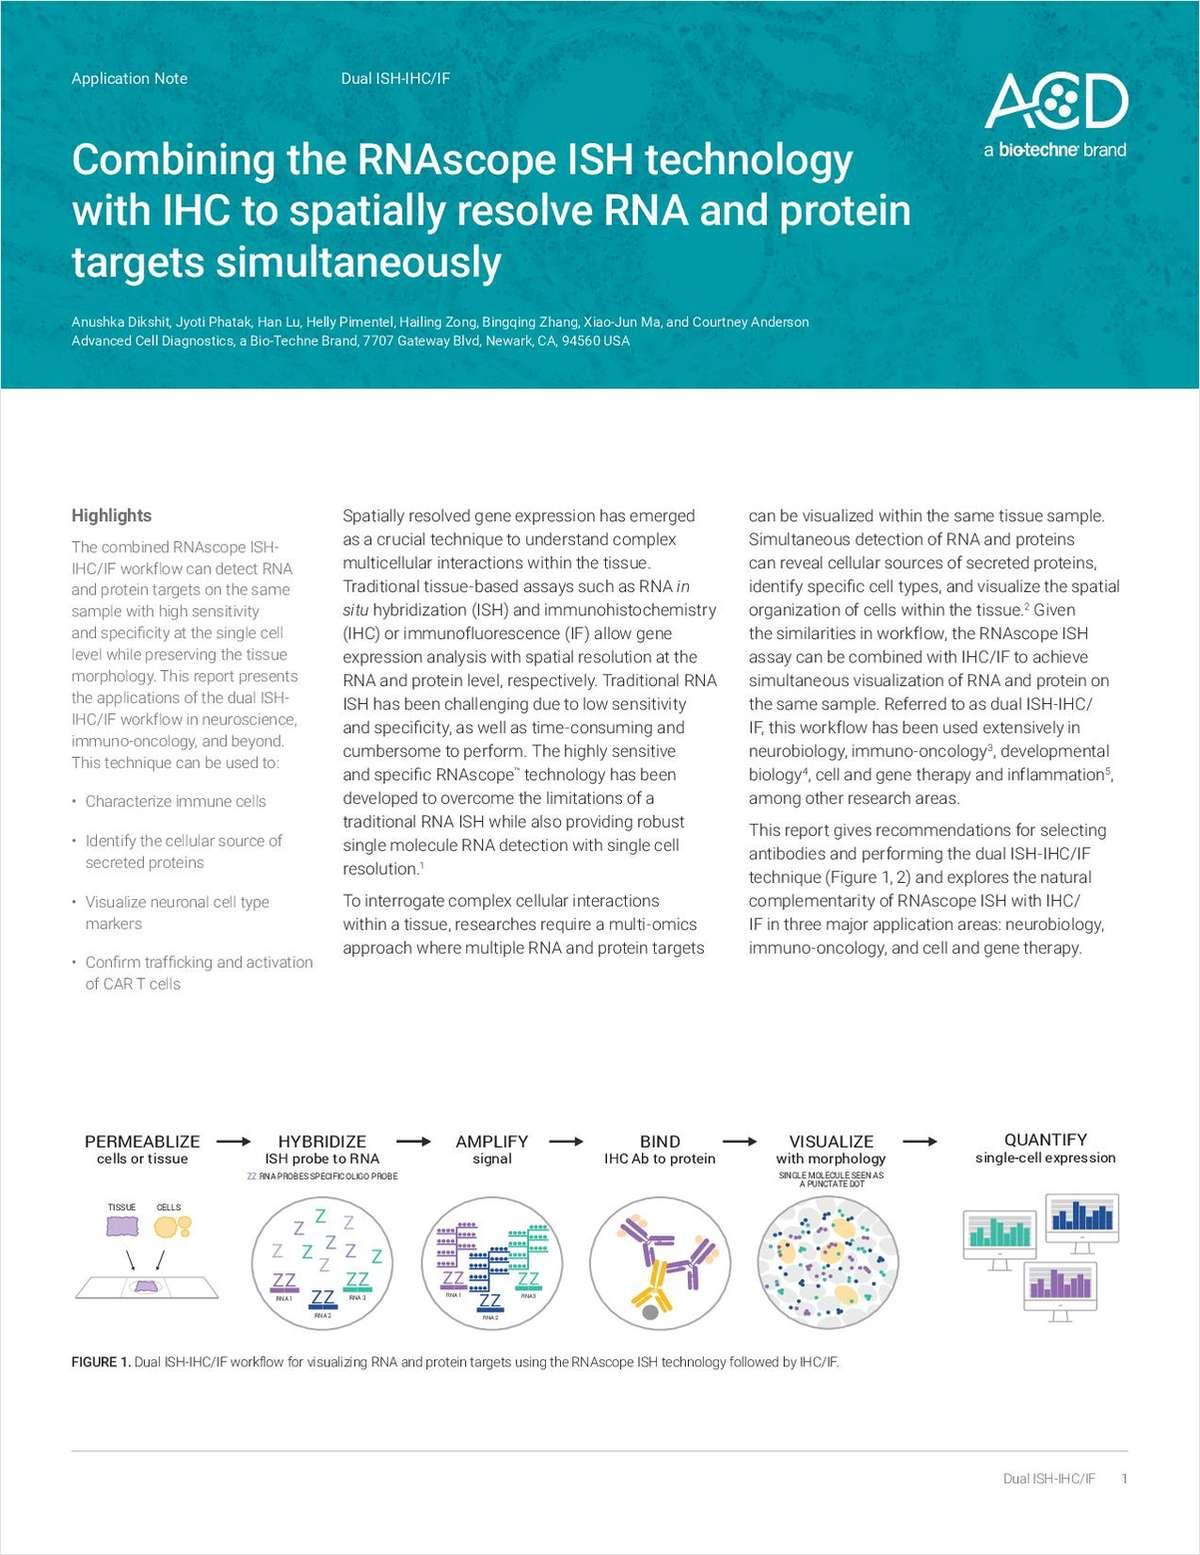 Combining the RNAscope ISH Technology with IHC to Spatially Resolve RNA and Protein Targets Simultaneously